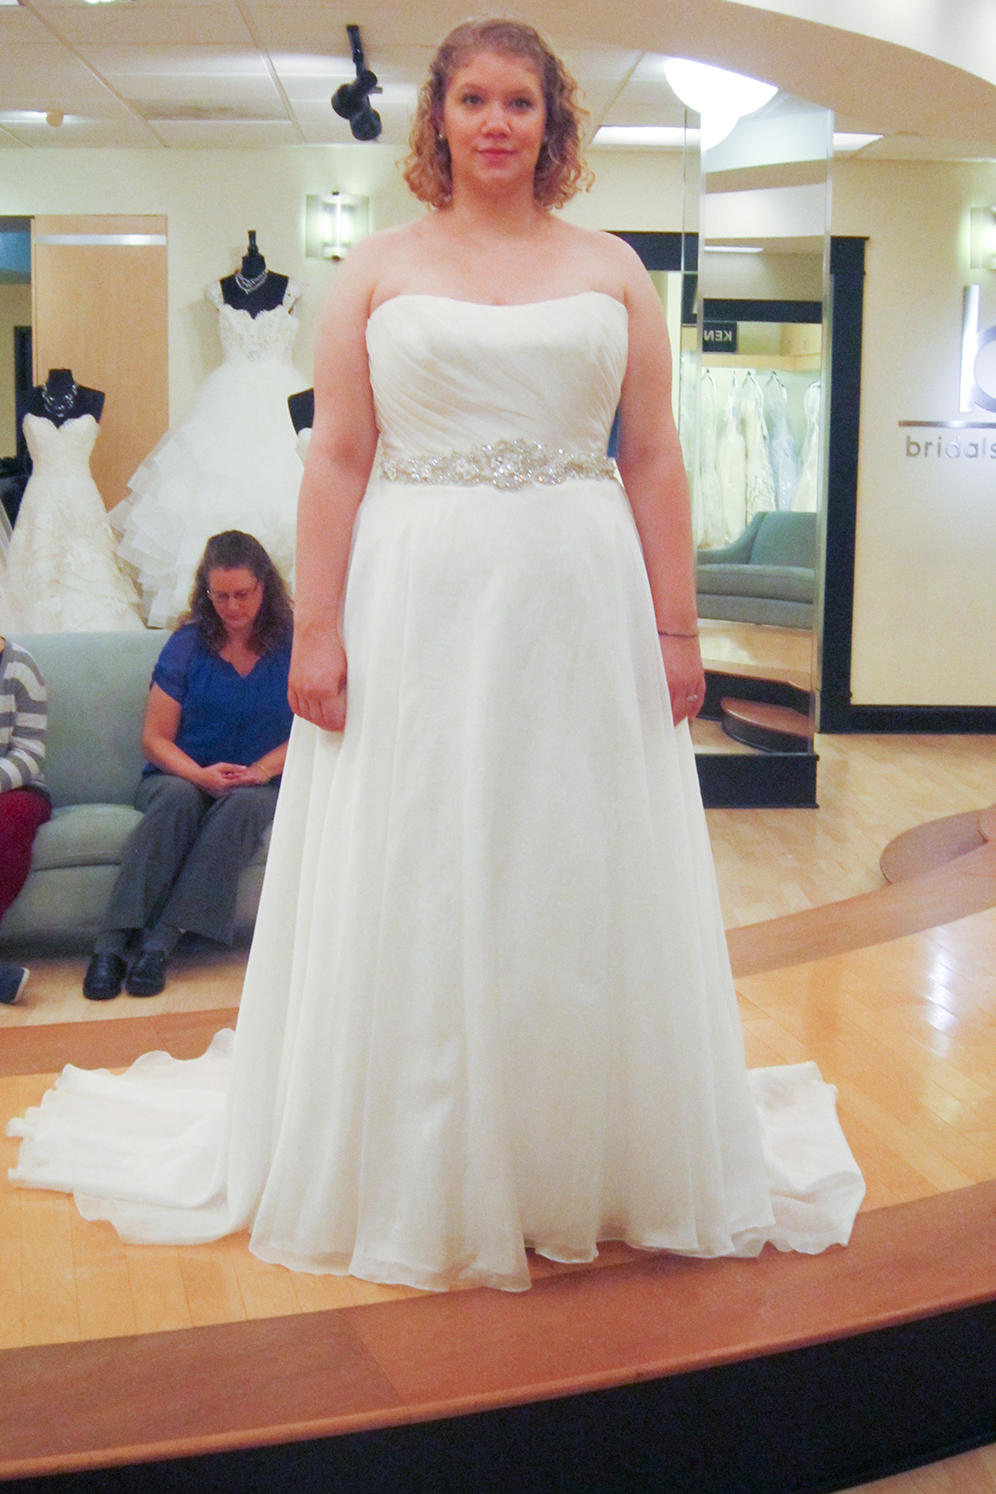 Season 7 Featured Wedding Dresses, Part 8 | Say Yes to the Dress ...